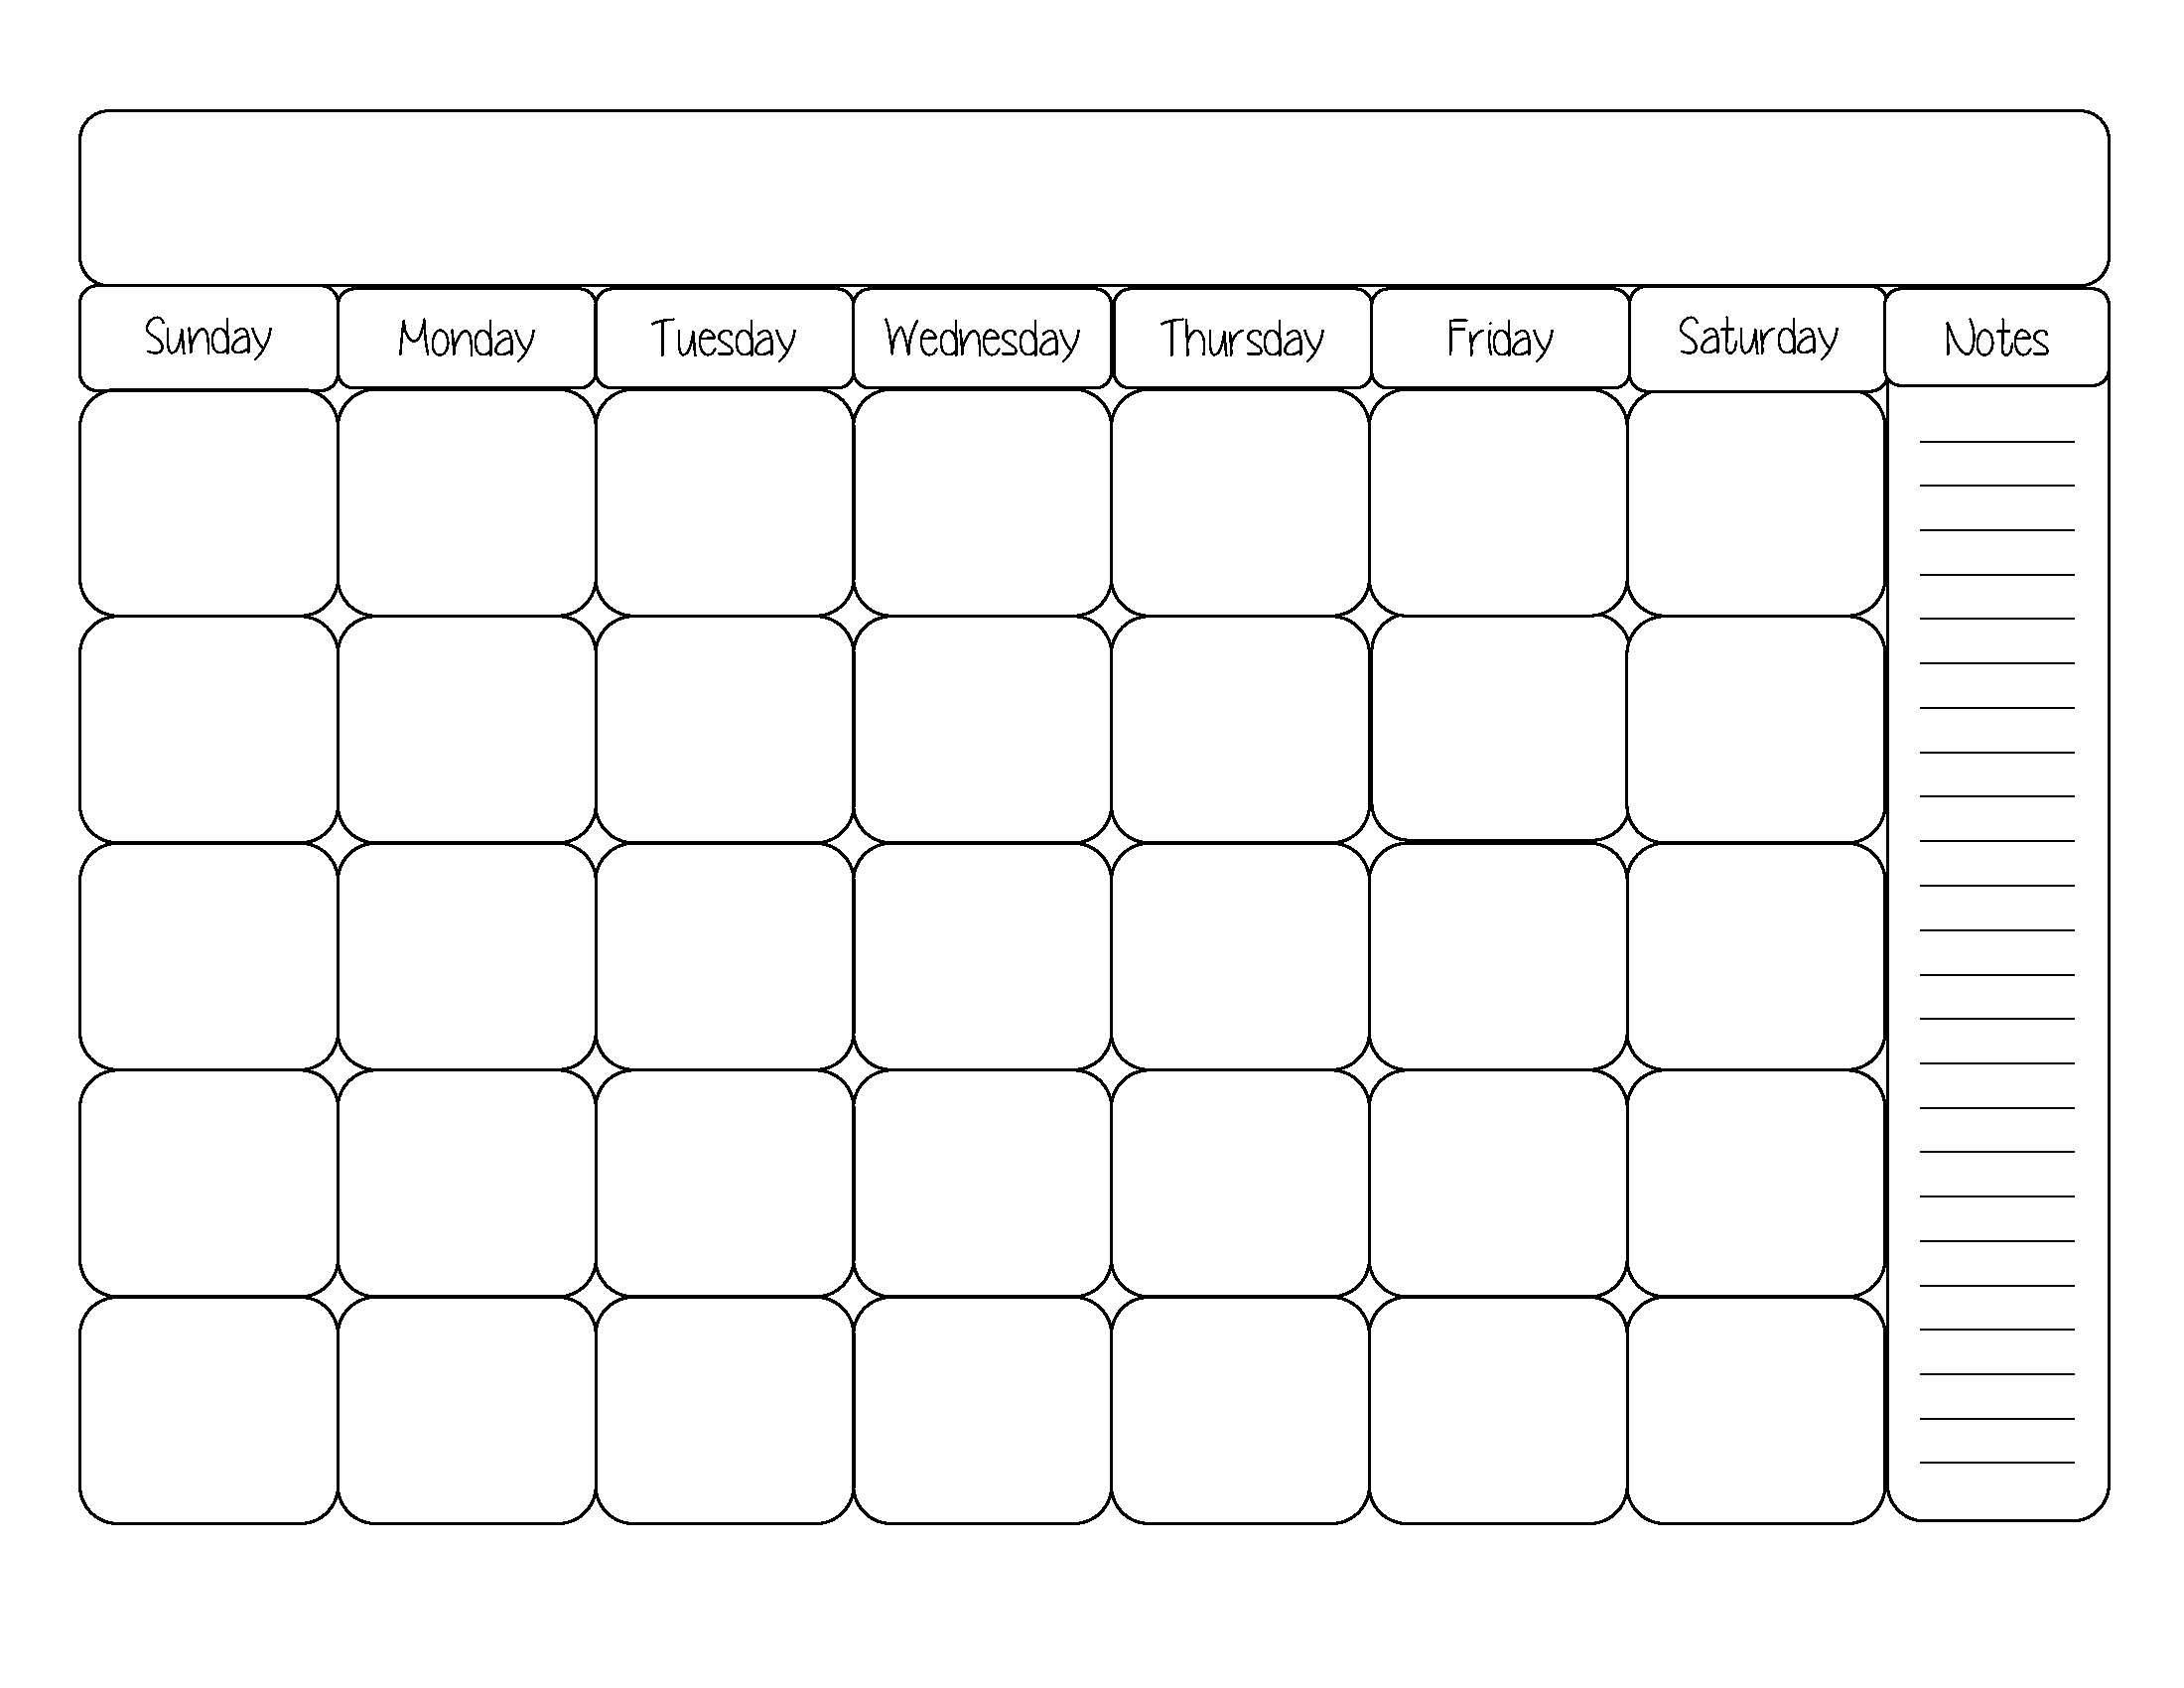 Customized Calendar Template from i.pinimg.com